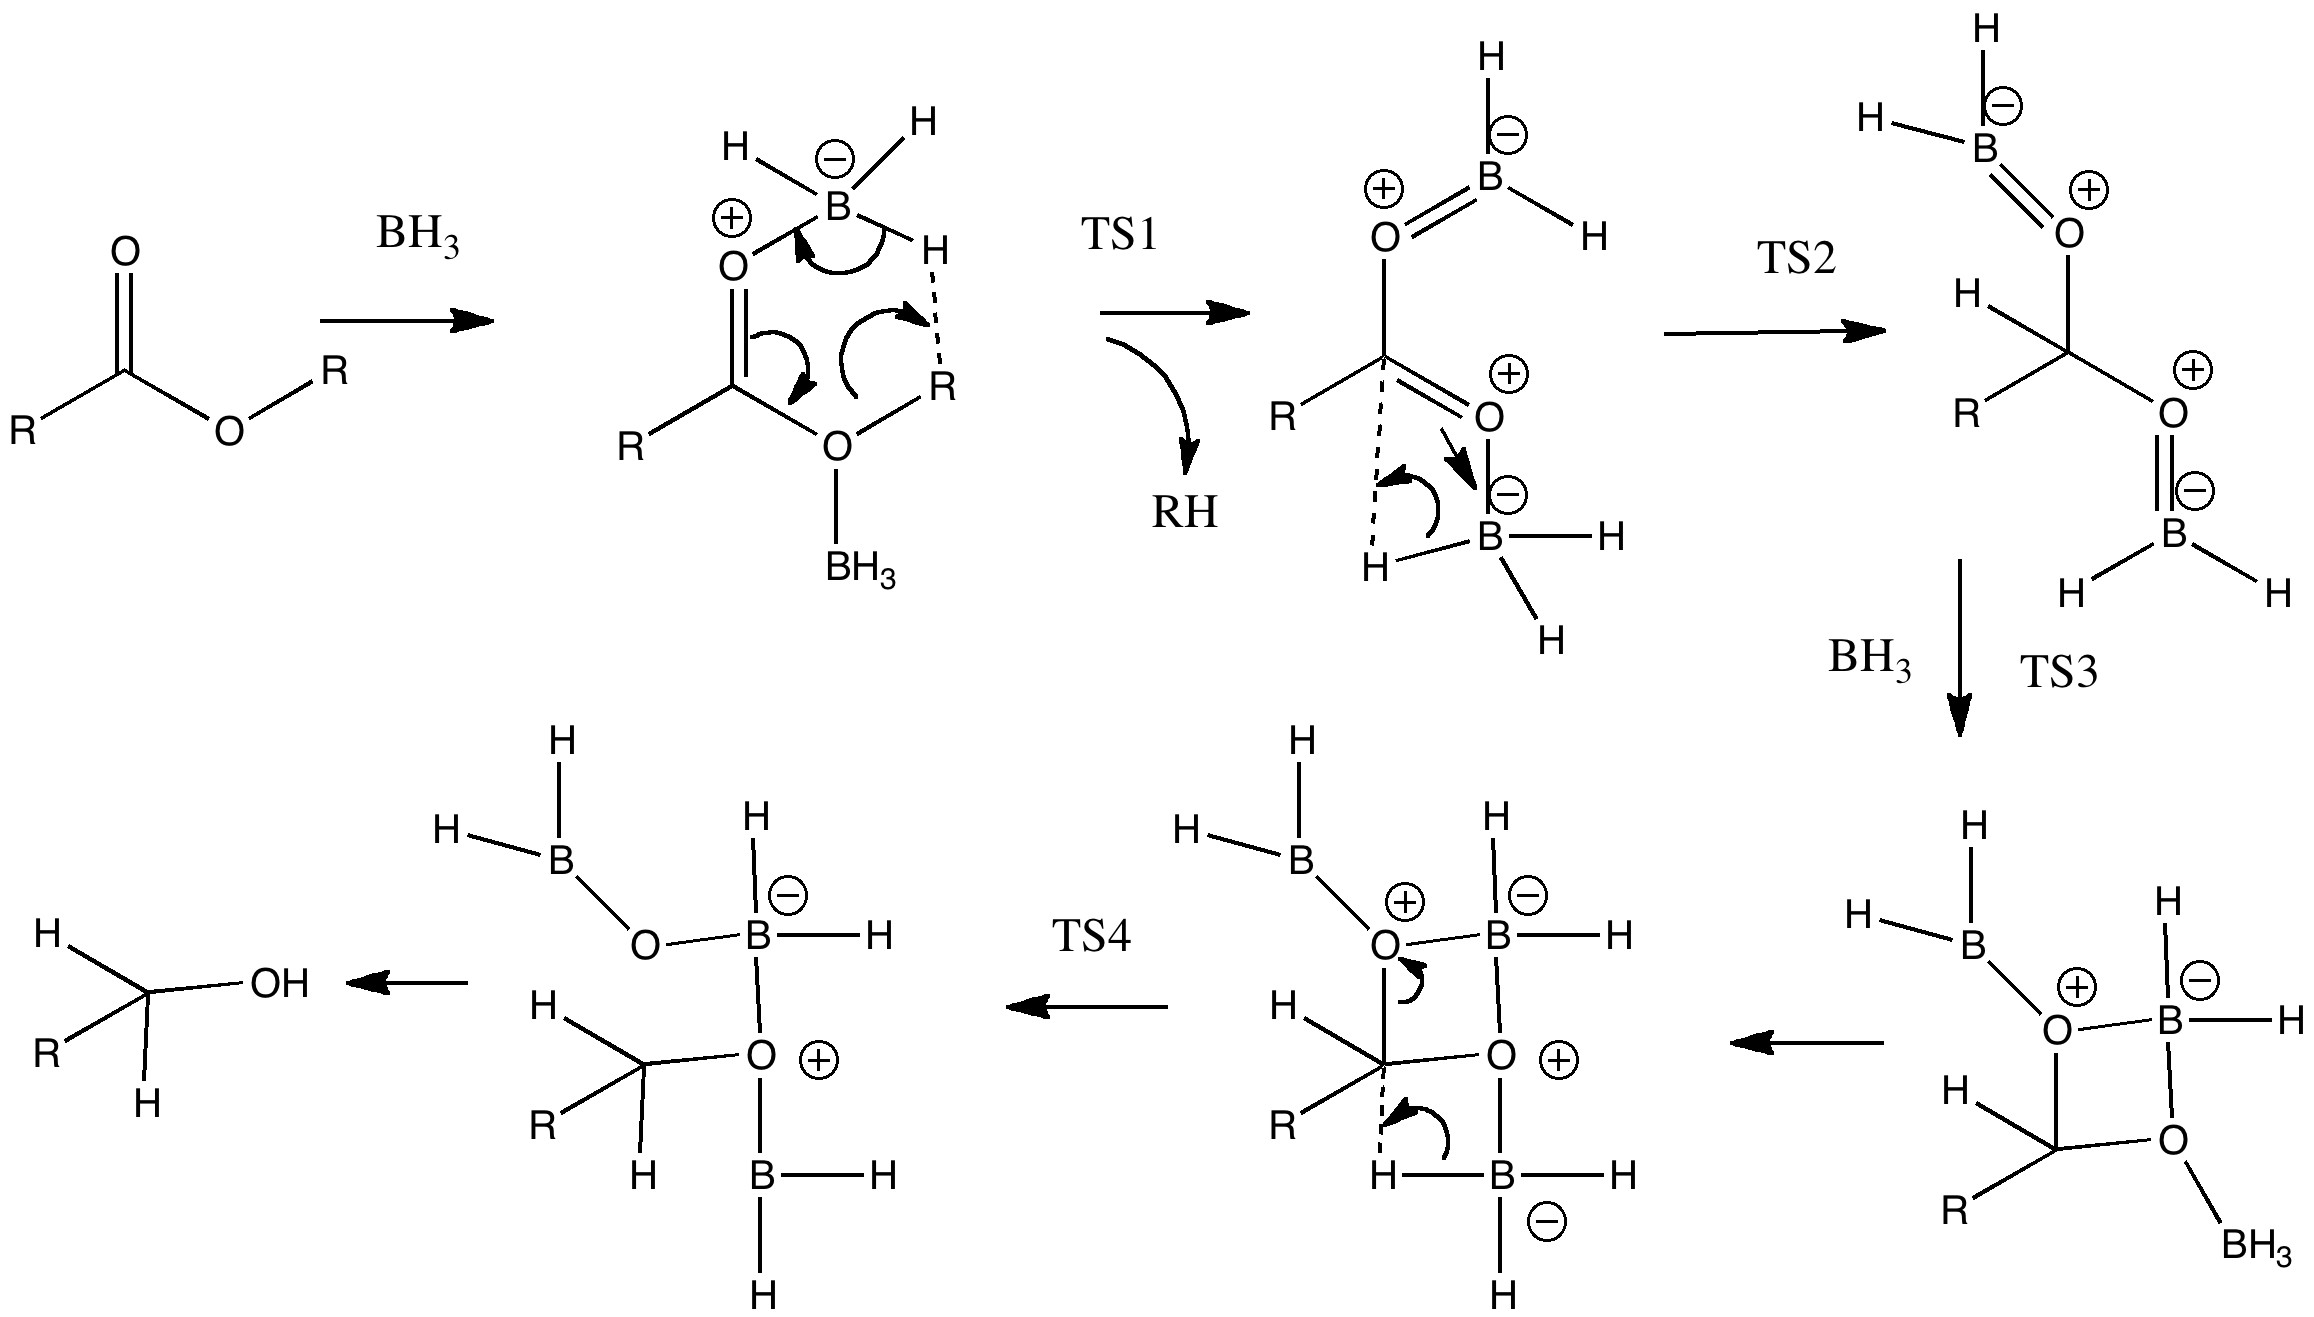 Acyloxyborane, alternative transition state for dihydrogen elimination